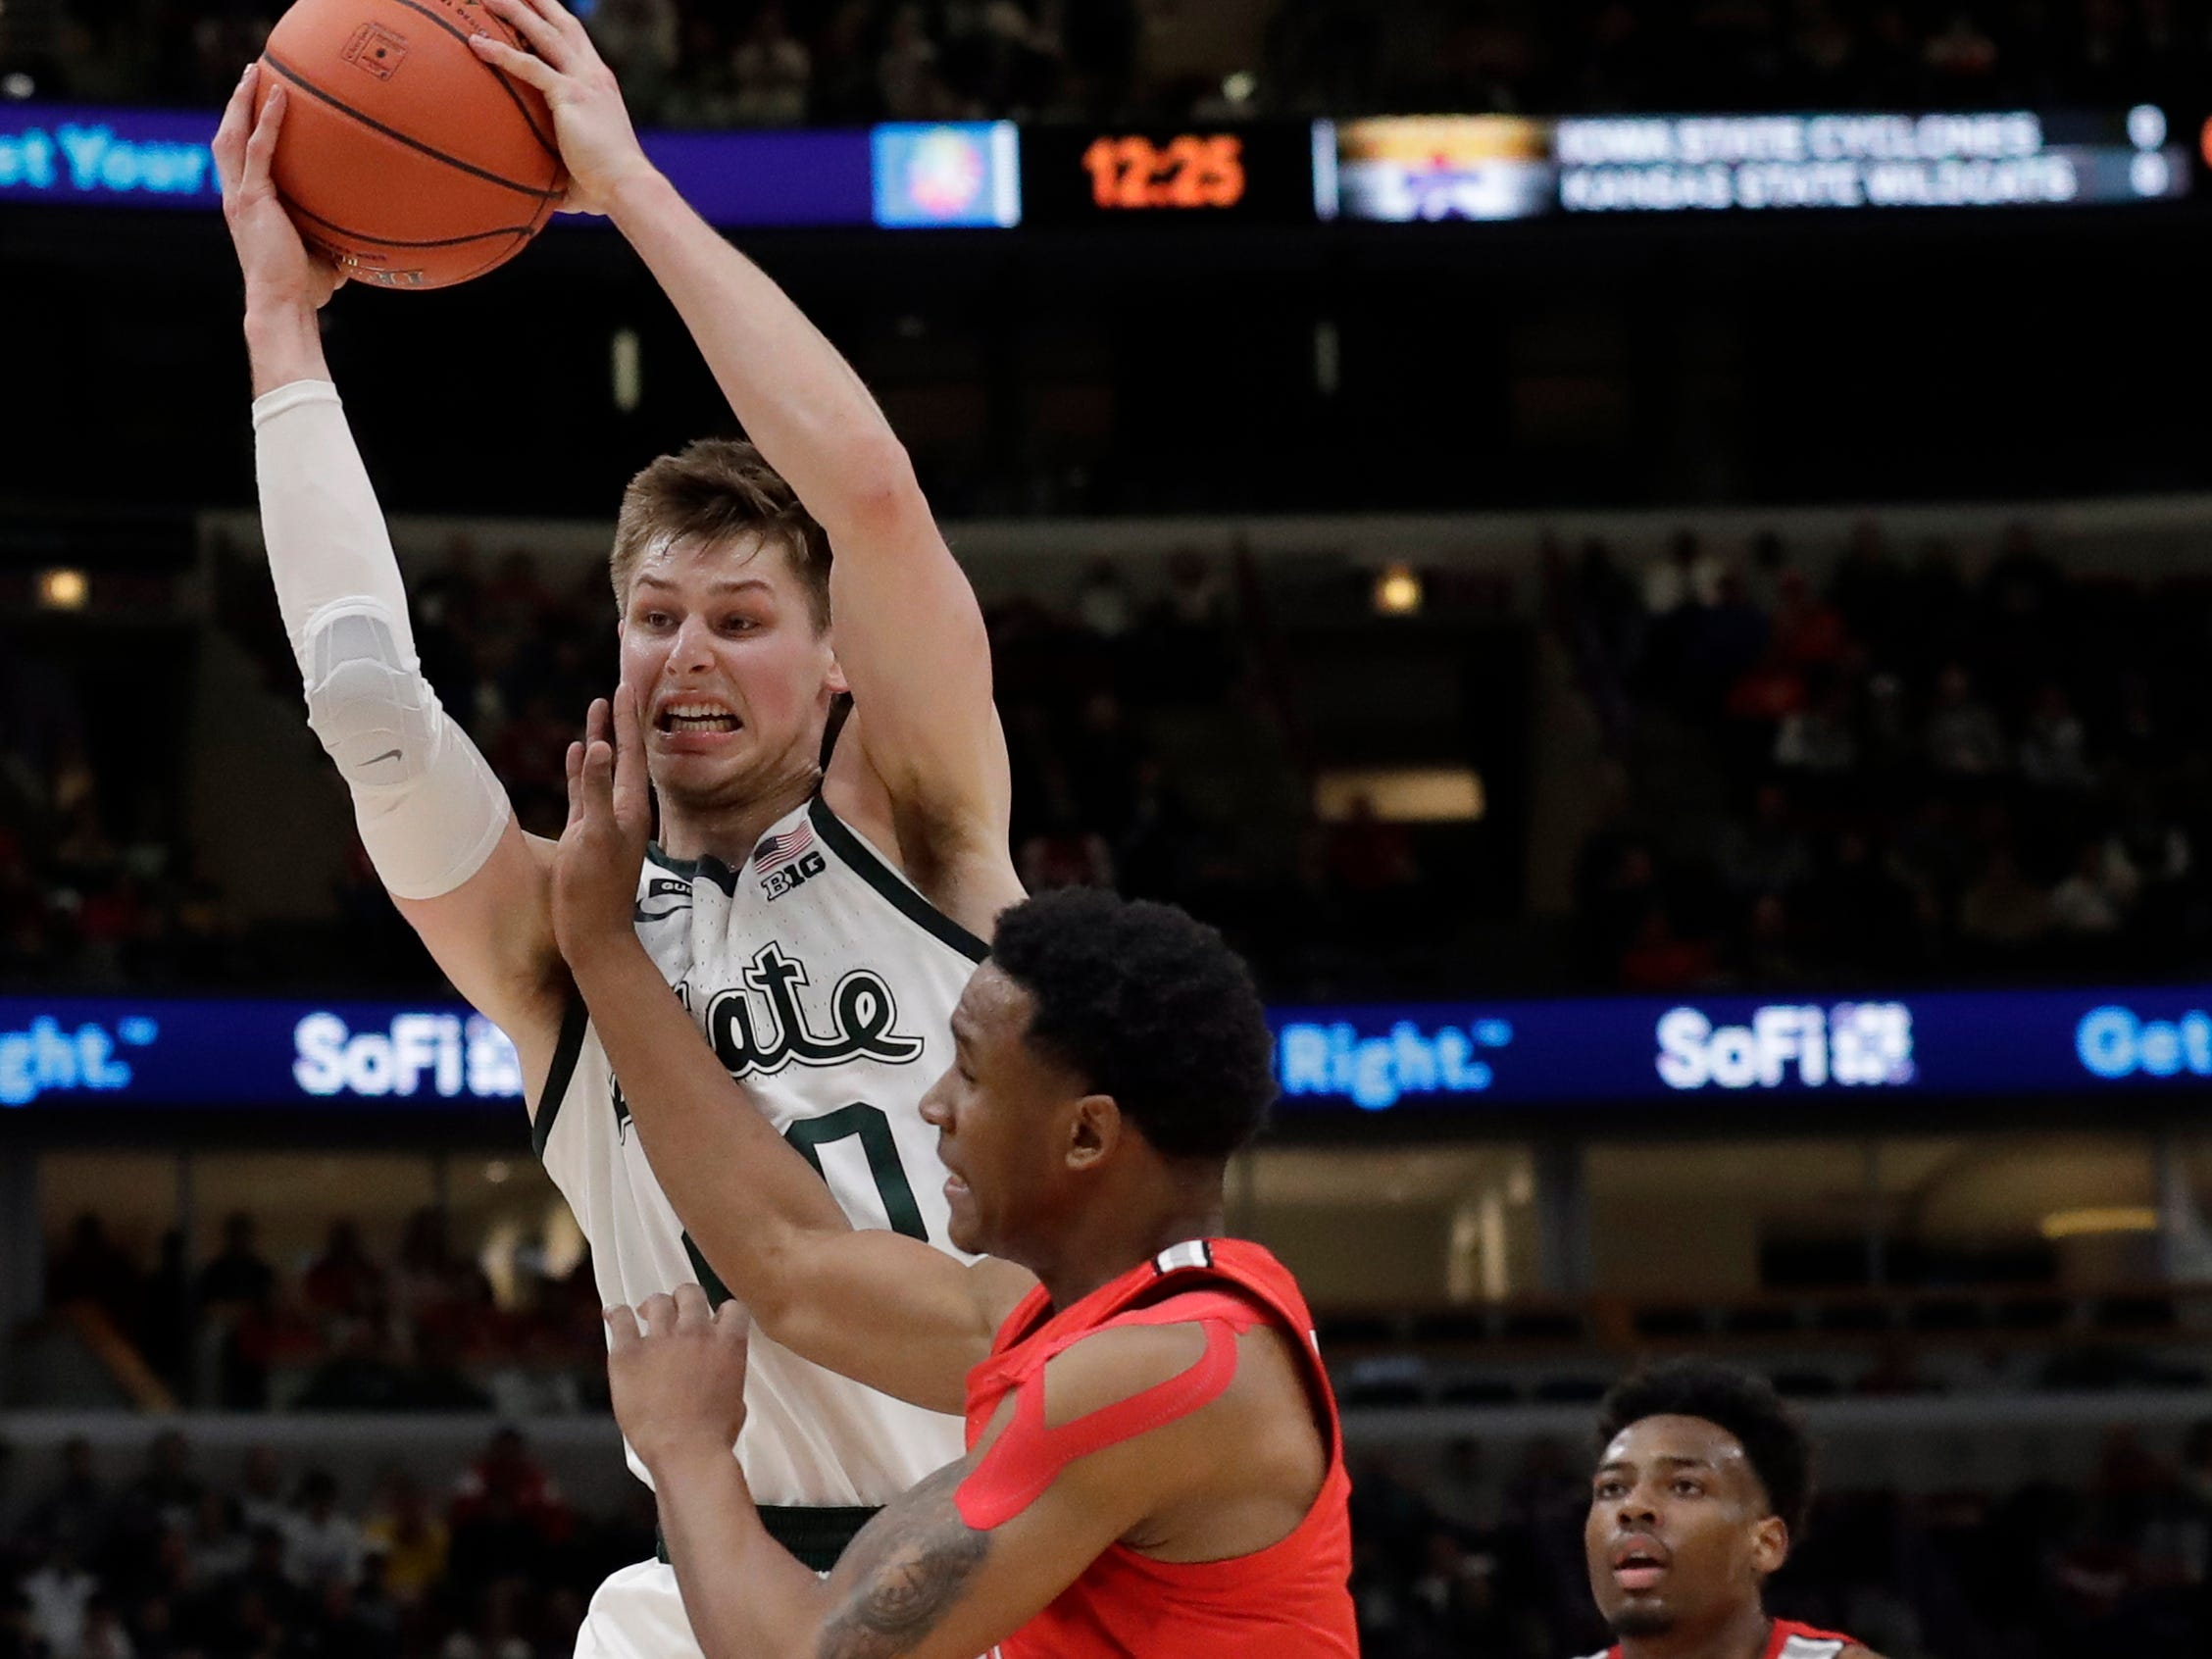 Michigan State's Matt McQuaid (20) grads a rebound against Ohio State's C.J. Jackson (3) during the first half.